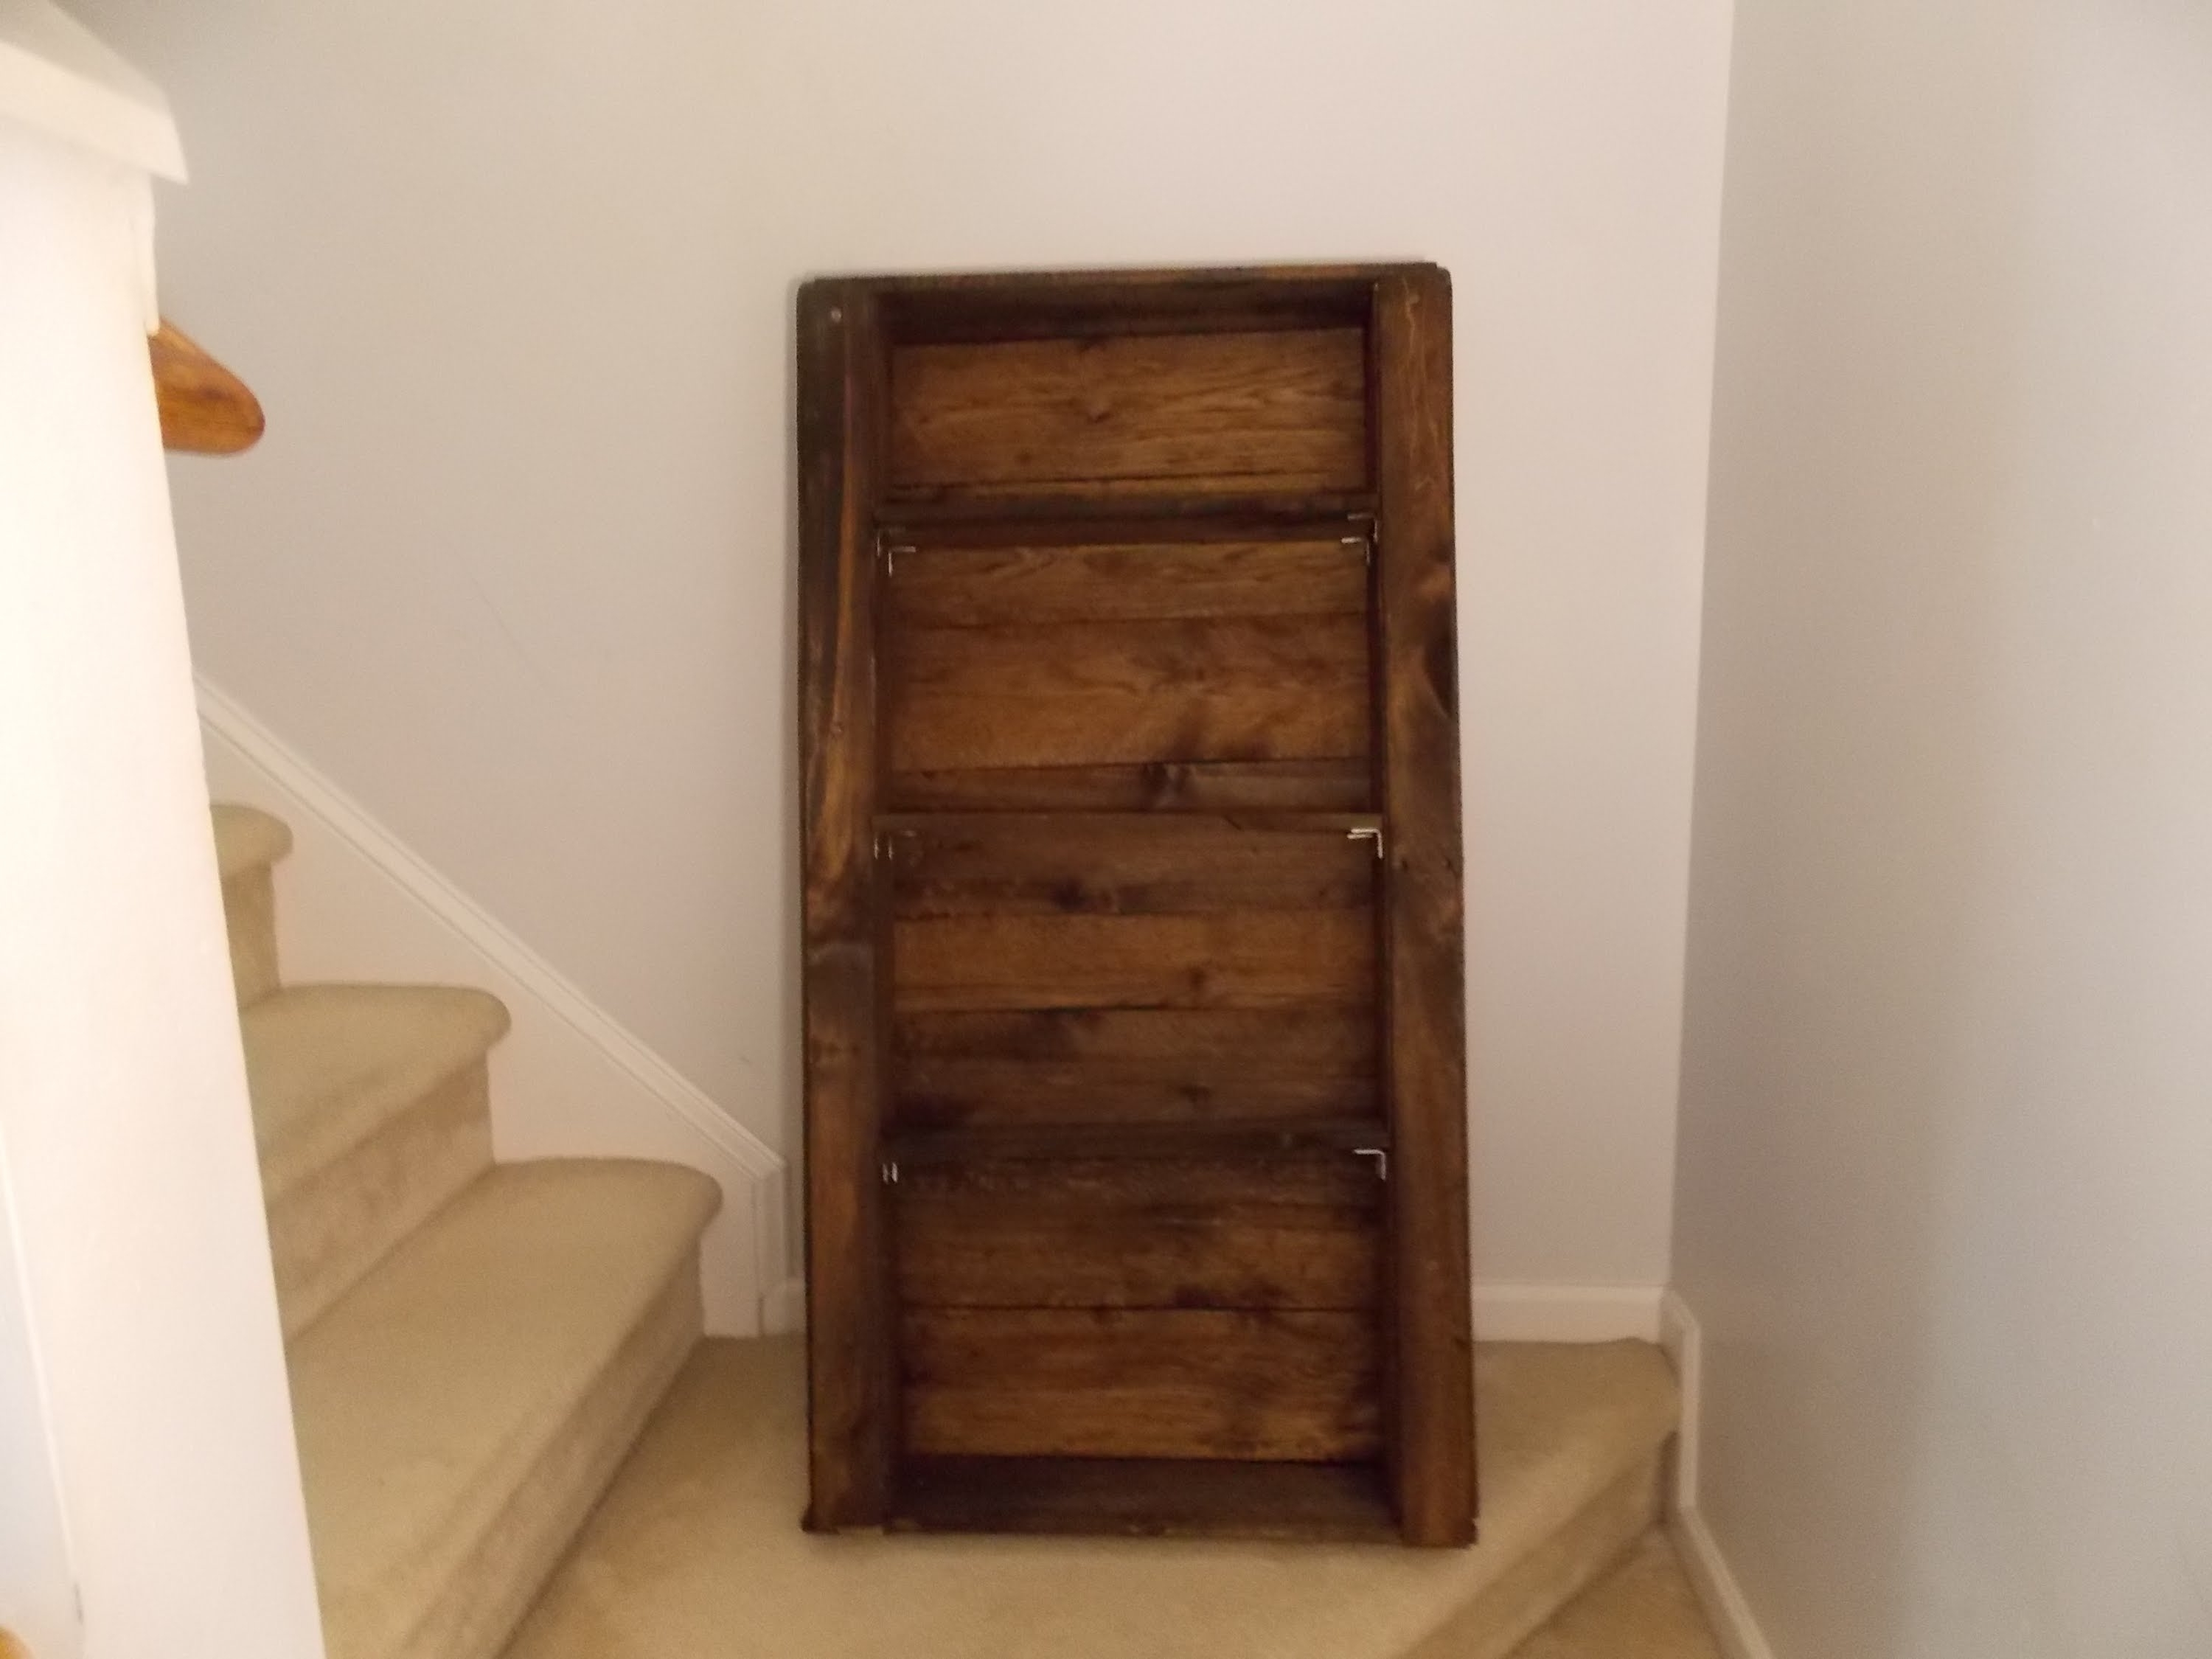 Pallet Bookcases Intended For Most Popular Pallet Bookshelf – Youtube (View 11 of 15)